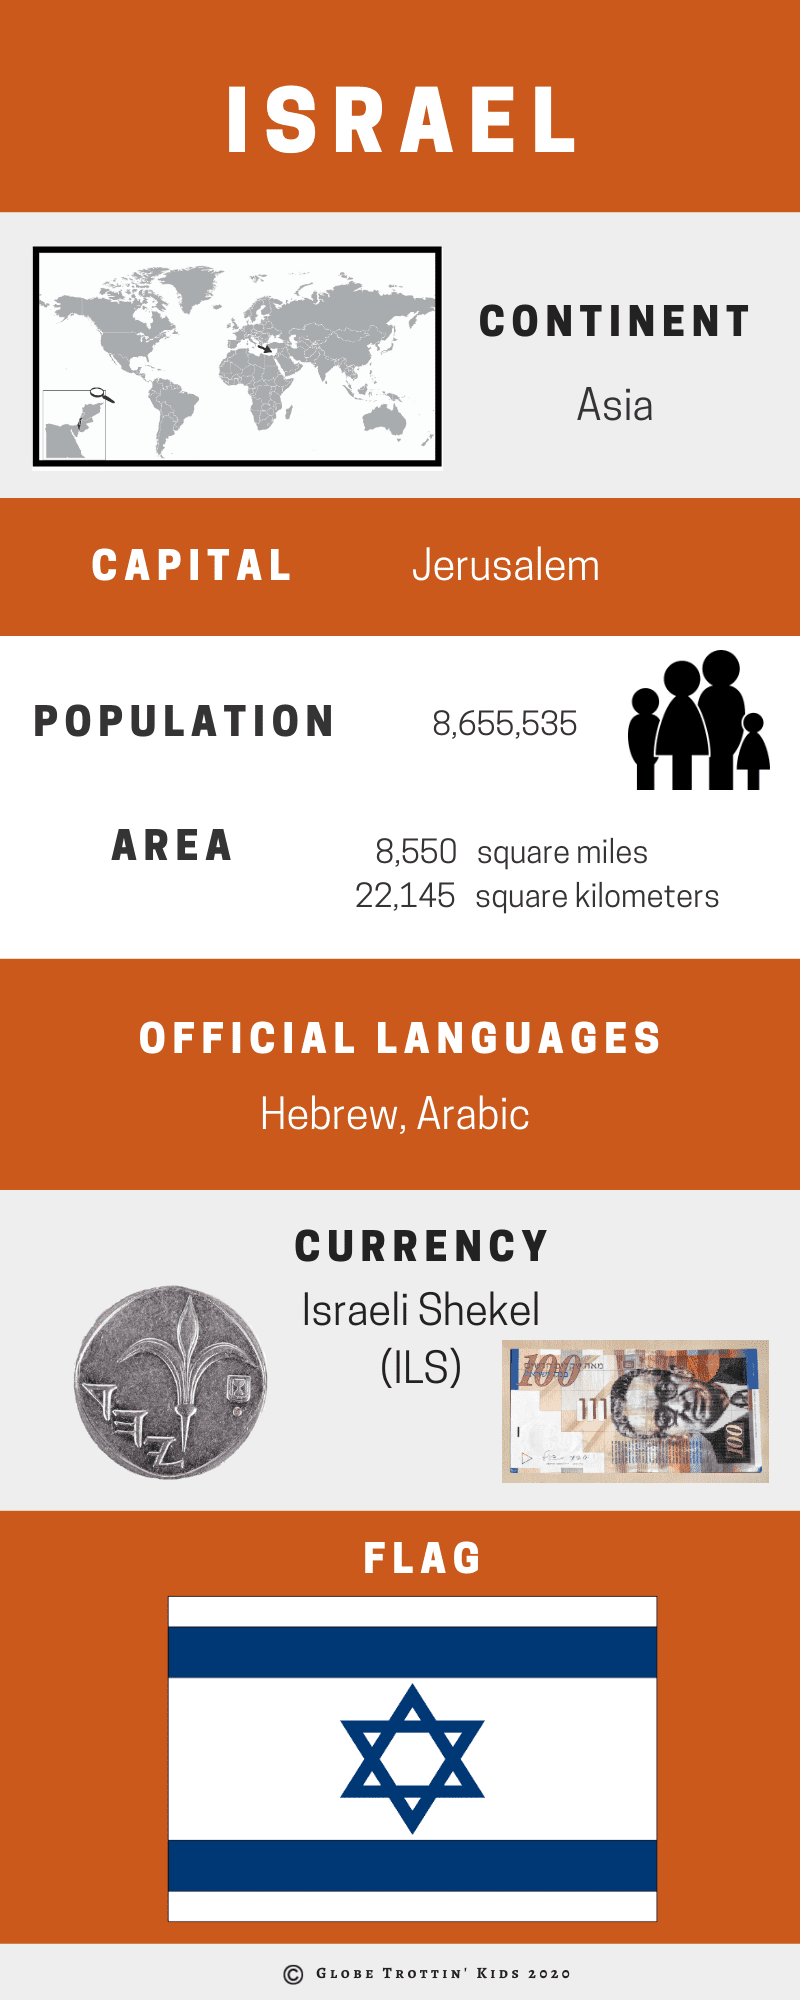 Israel Infographic